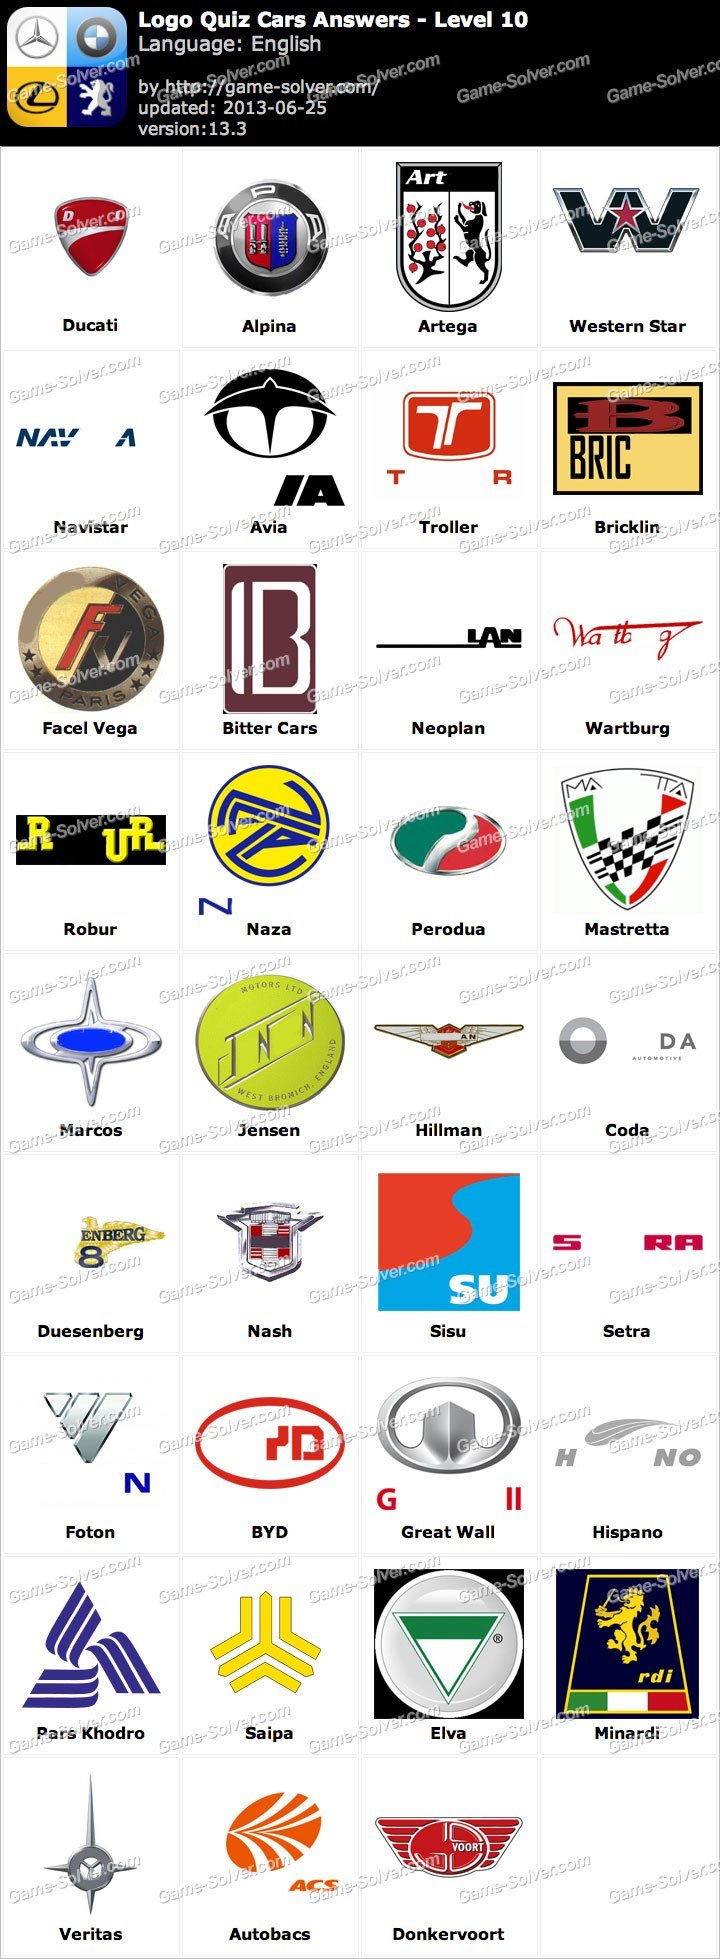 Latest Logo Quiz Cars Answers Level 10 Game Solver Free Download Original 1024 x 768